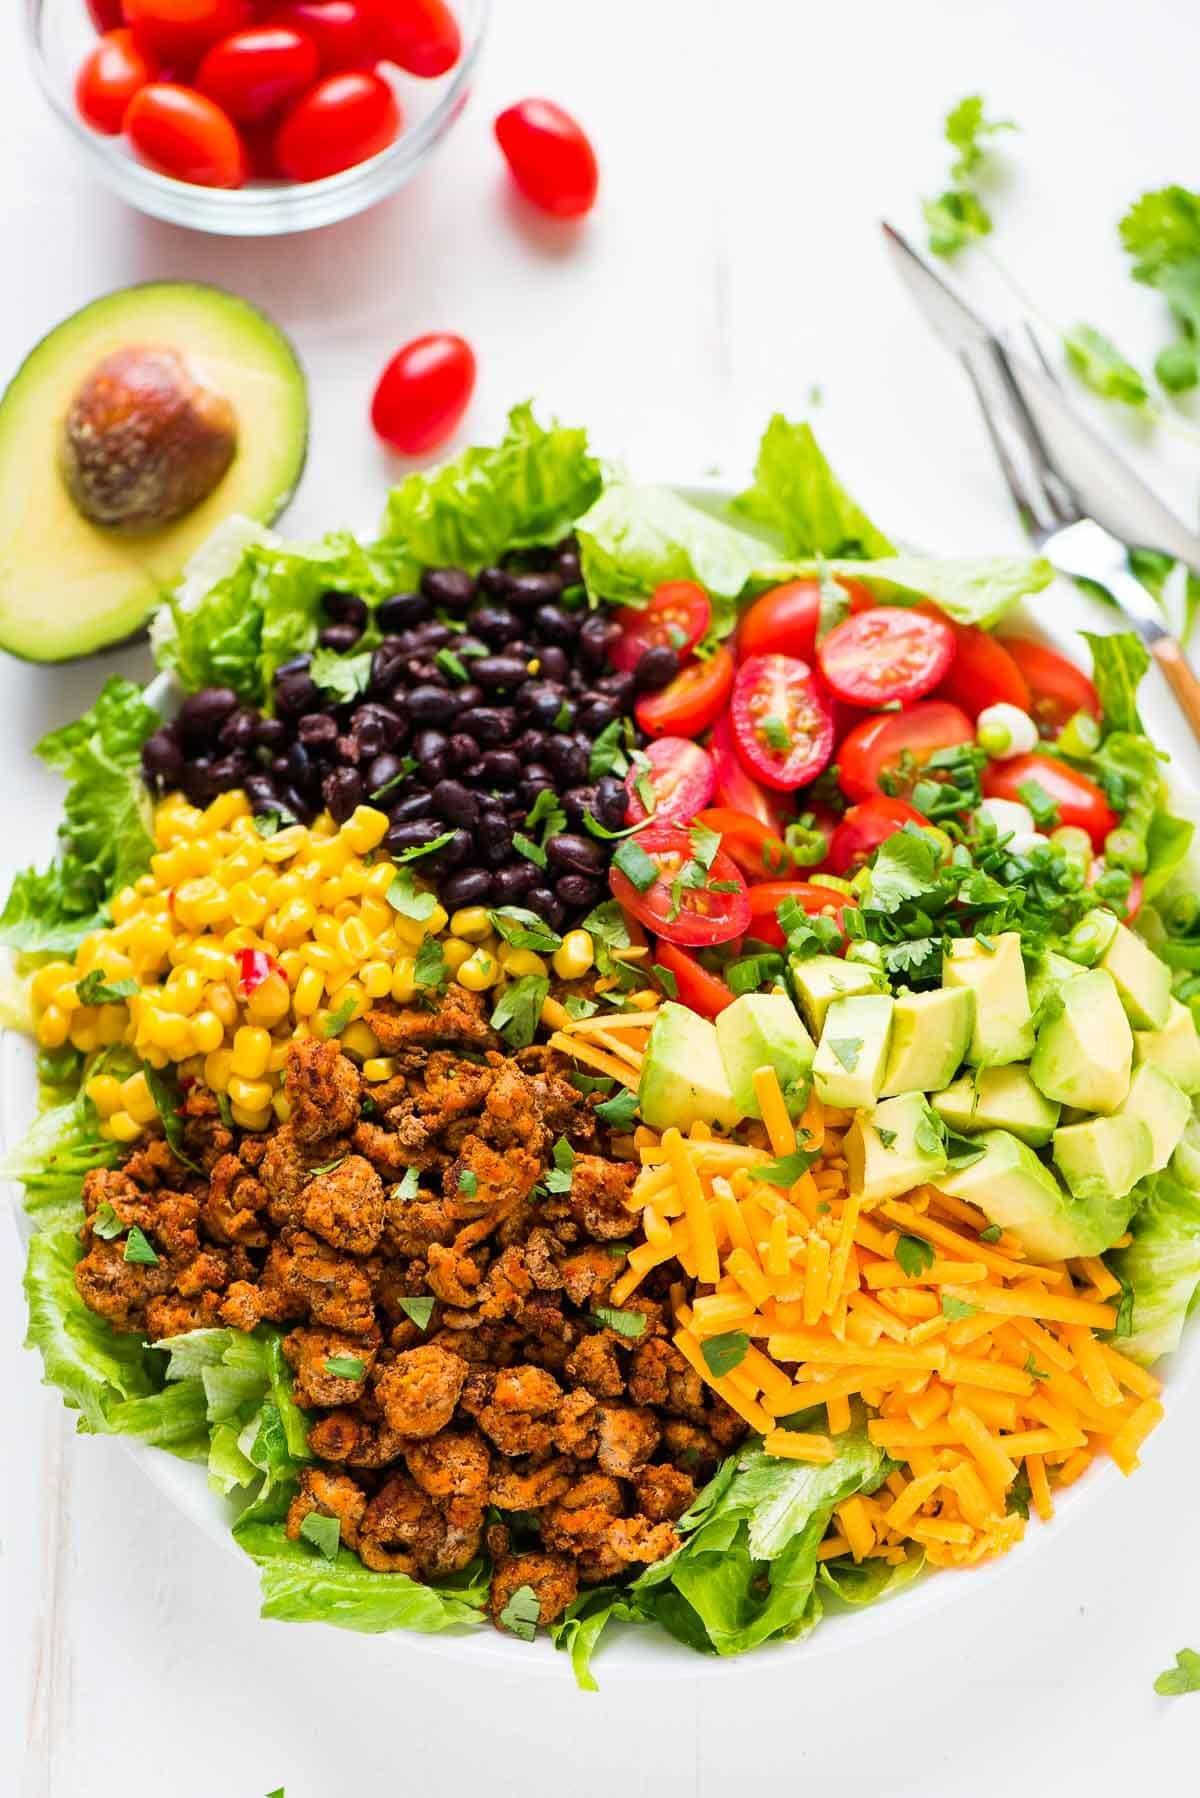 Easy Skinny Taco Salad with ground turkey, black beans, cheese, and crunchy baked tortillas. Recipe at wellplated.com | @wellplated